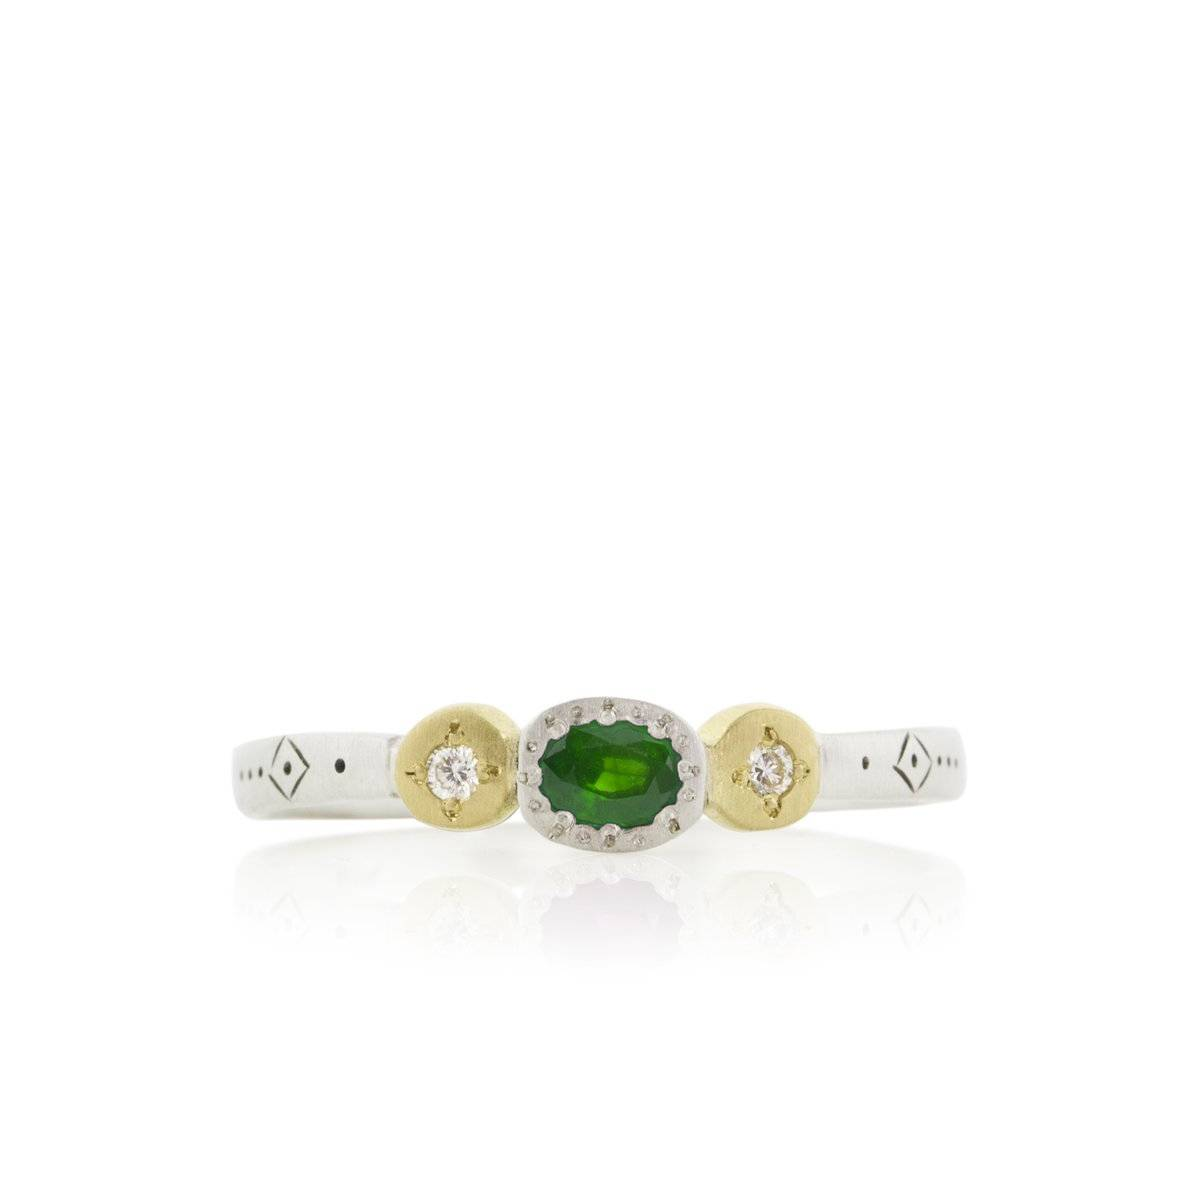 Emerald Harmony Oval and Round Charm Ring